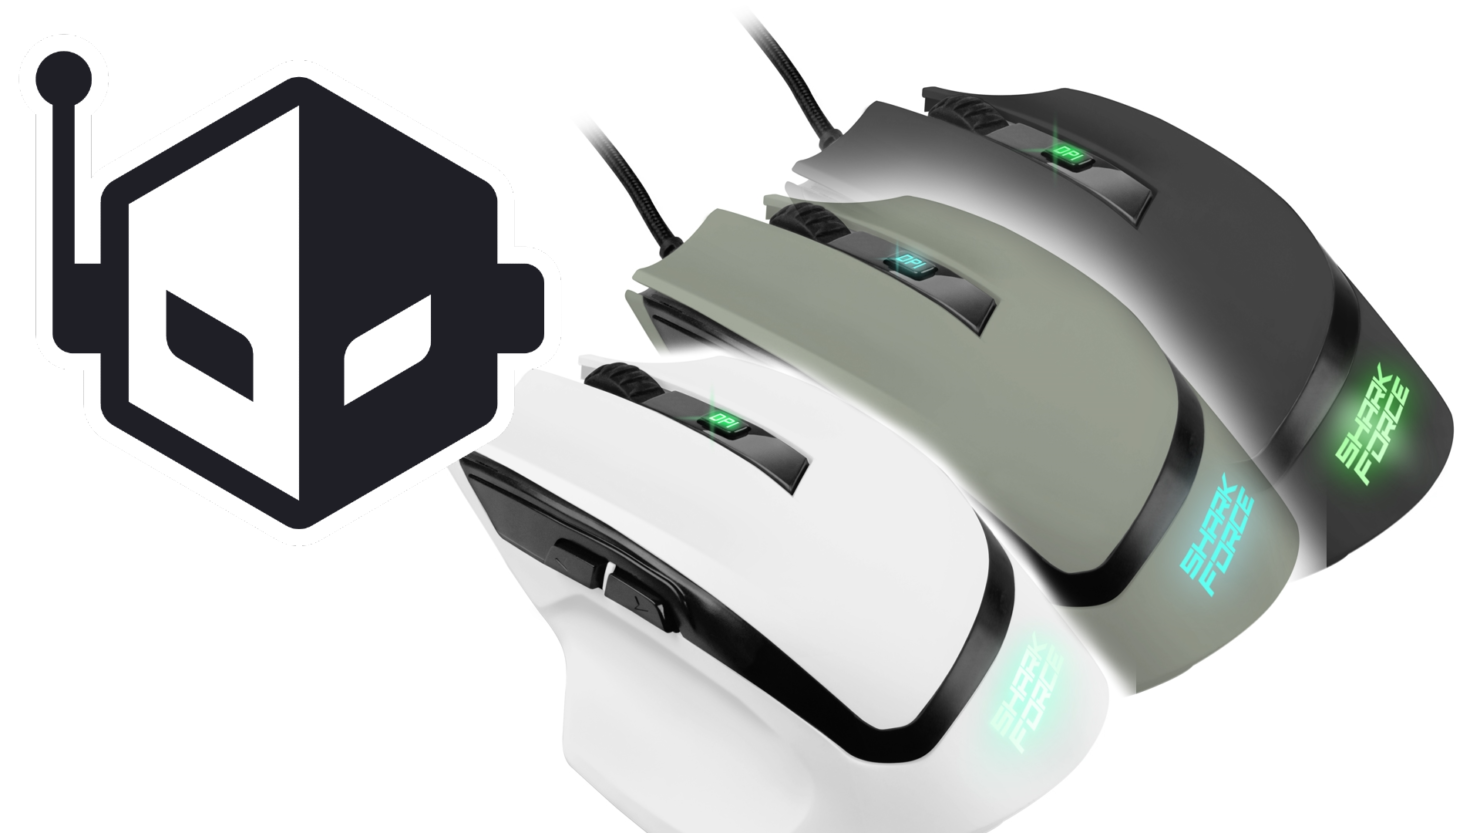 sharkoon-released-the-shark-force-ii-ergonomic-gaming-mouse